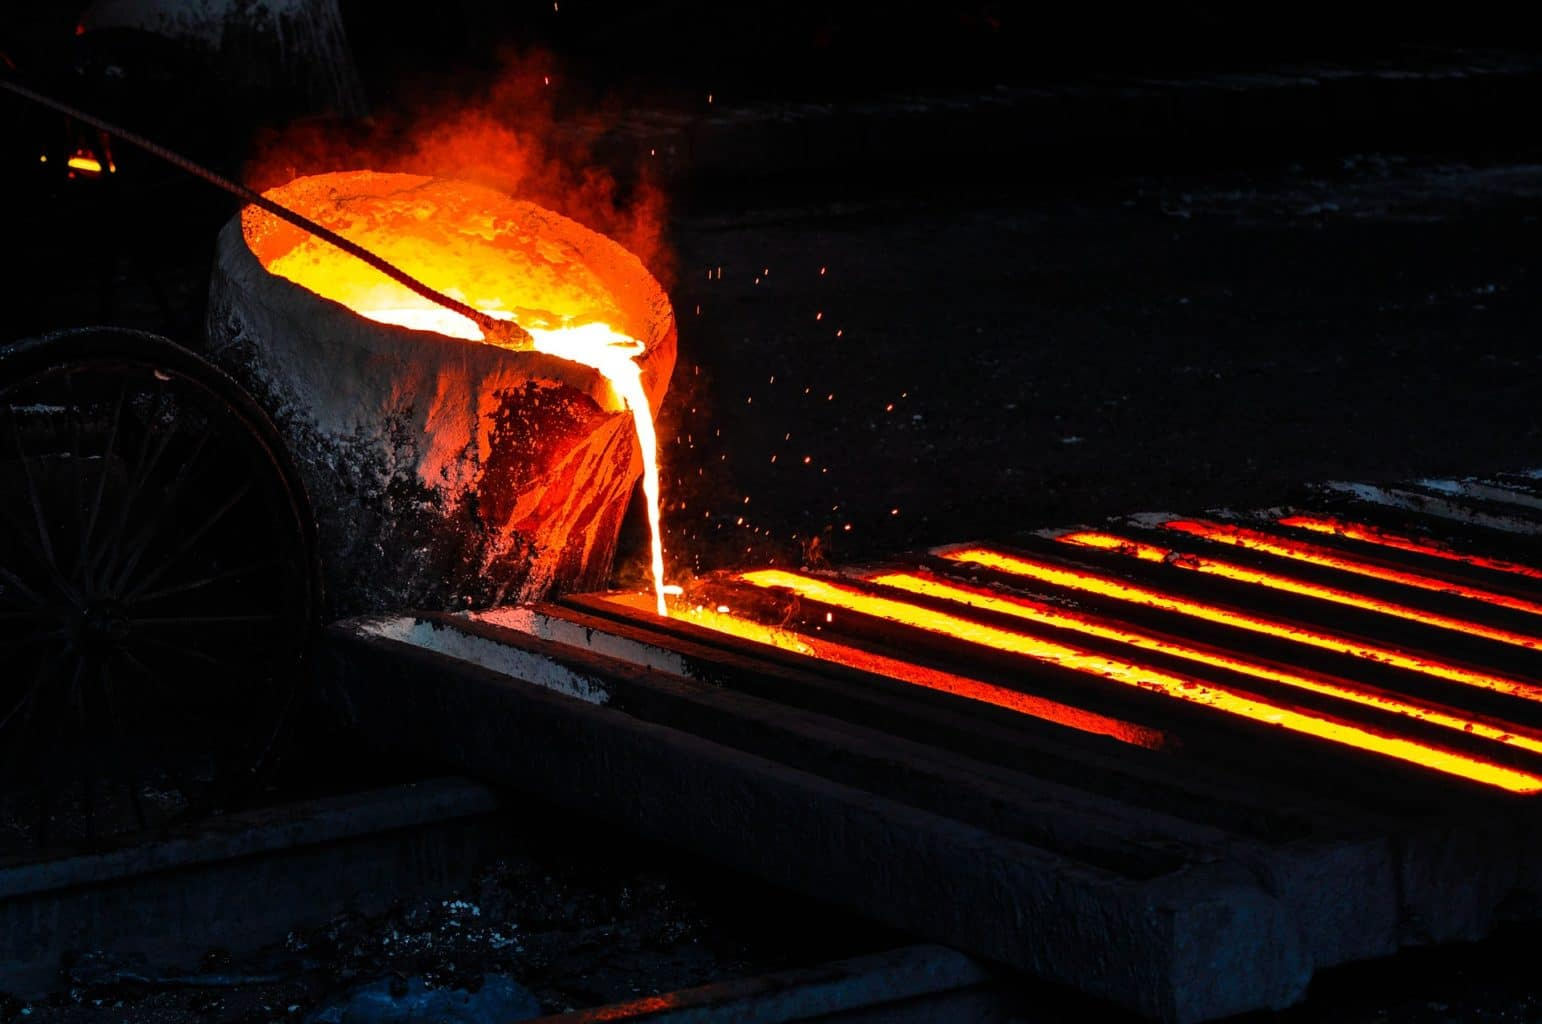 manganese steel casting foundry